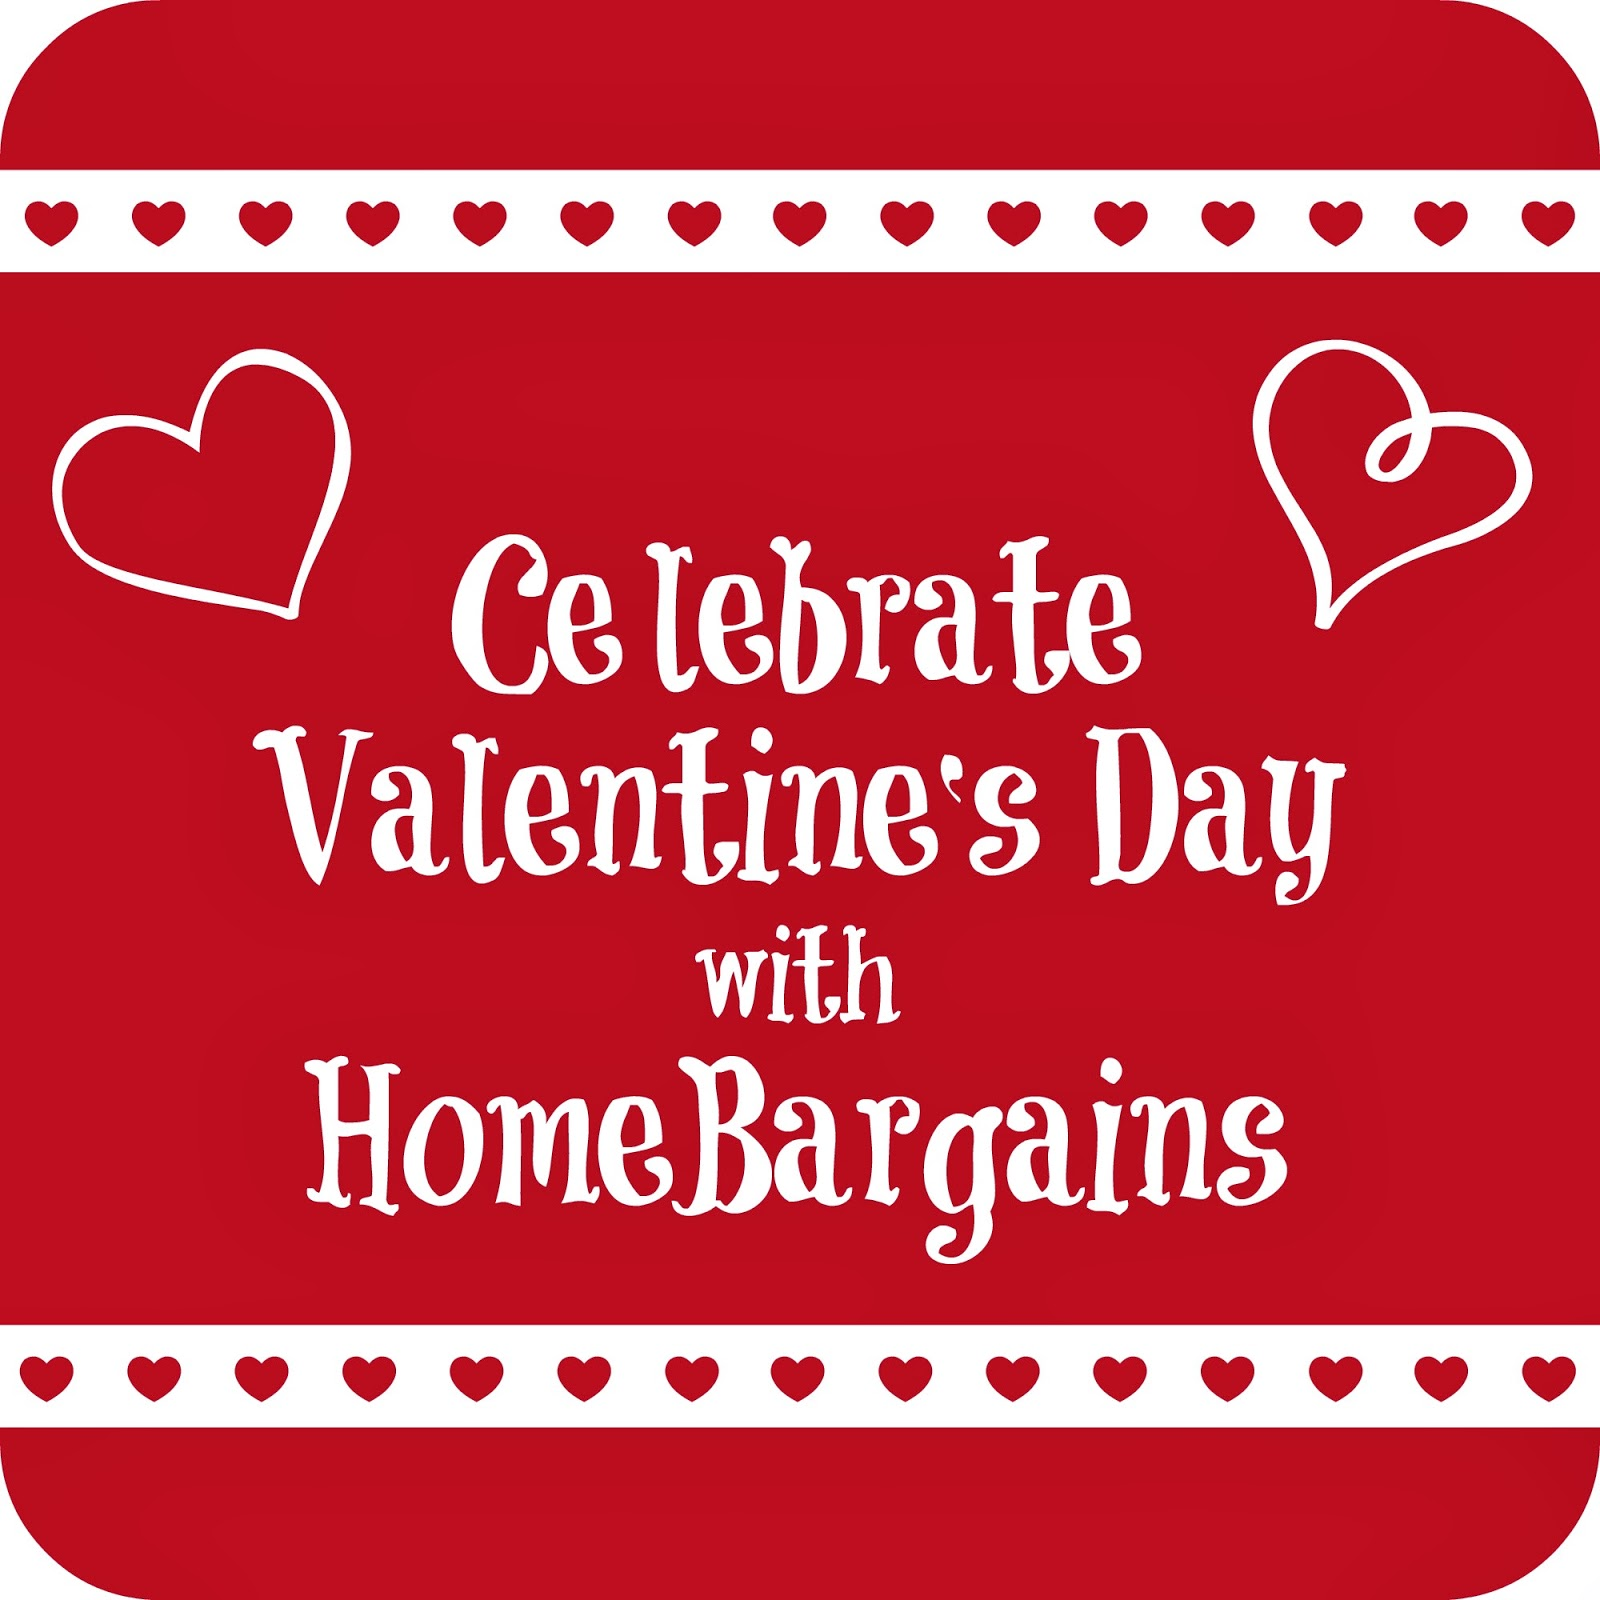 Celebrate Valentine's Day with Home Bargains